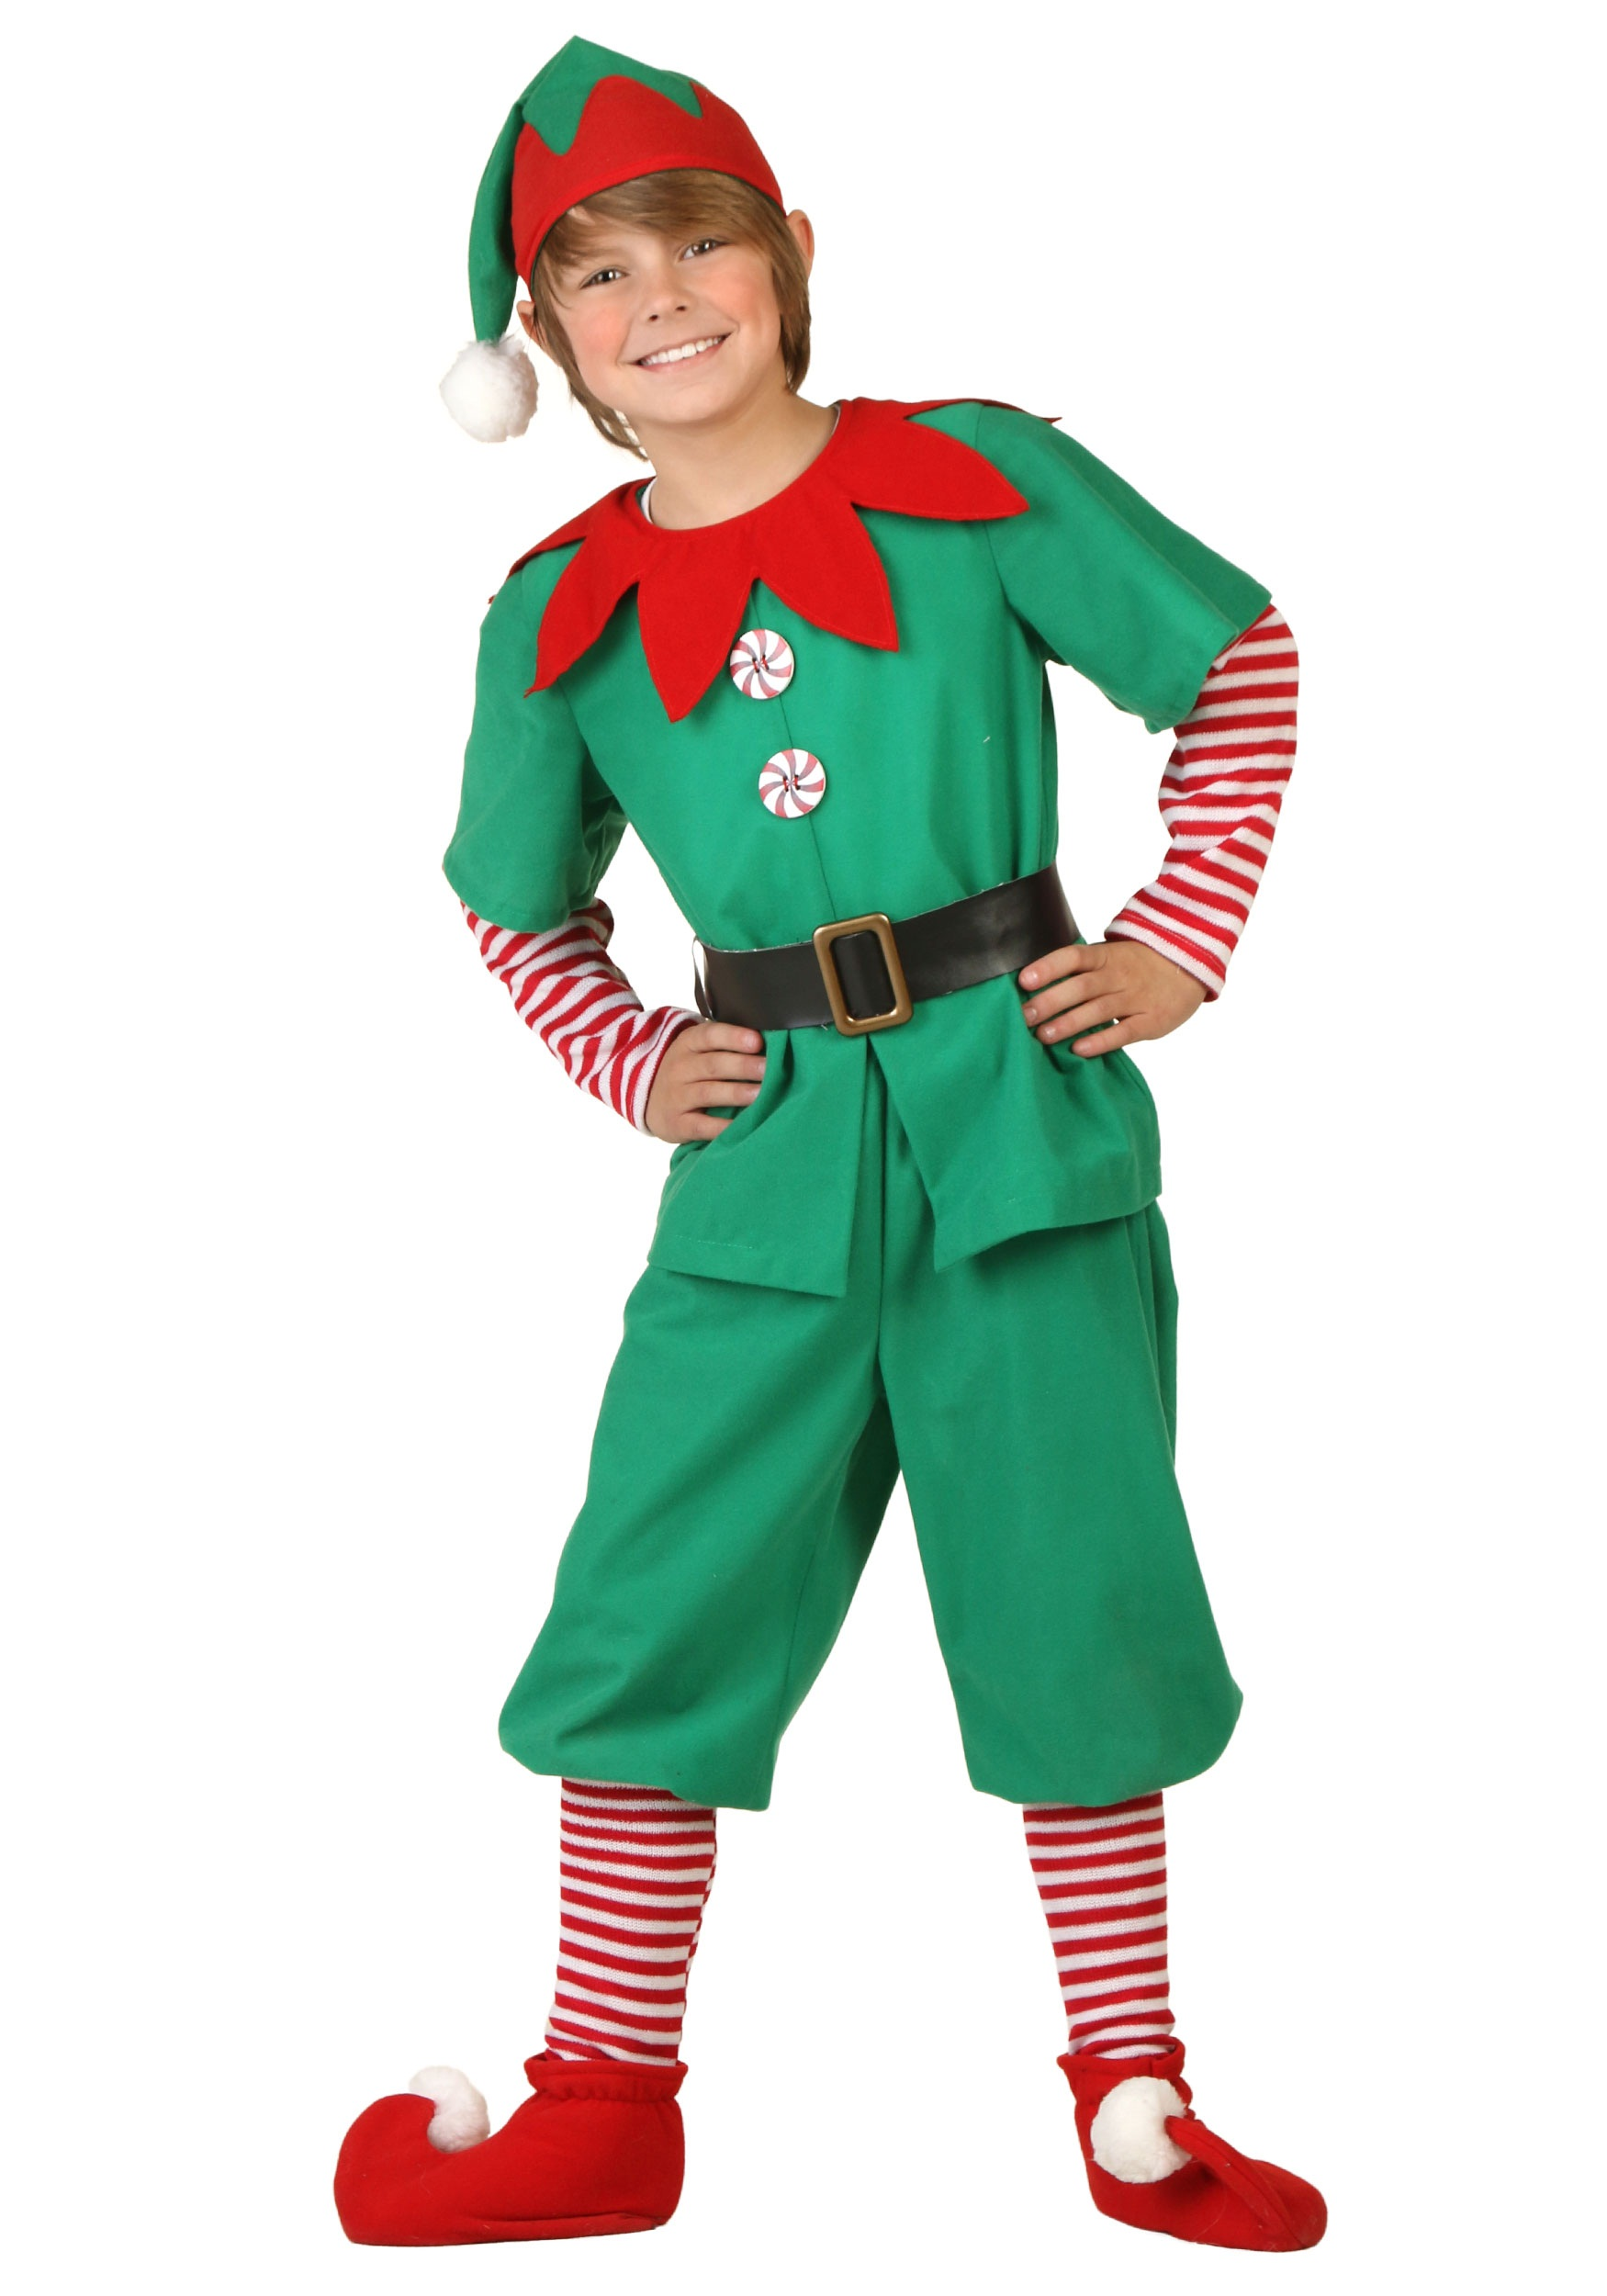 Red Flannel Child Santa Suit Christmas Costume Childrens Small or Large New